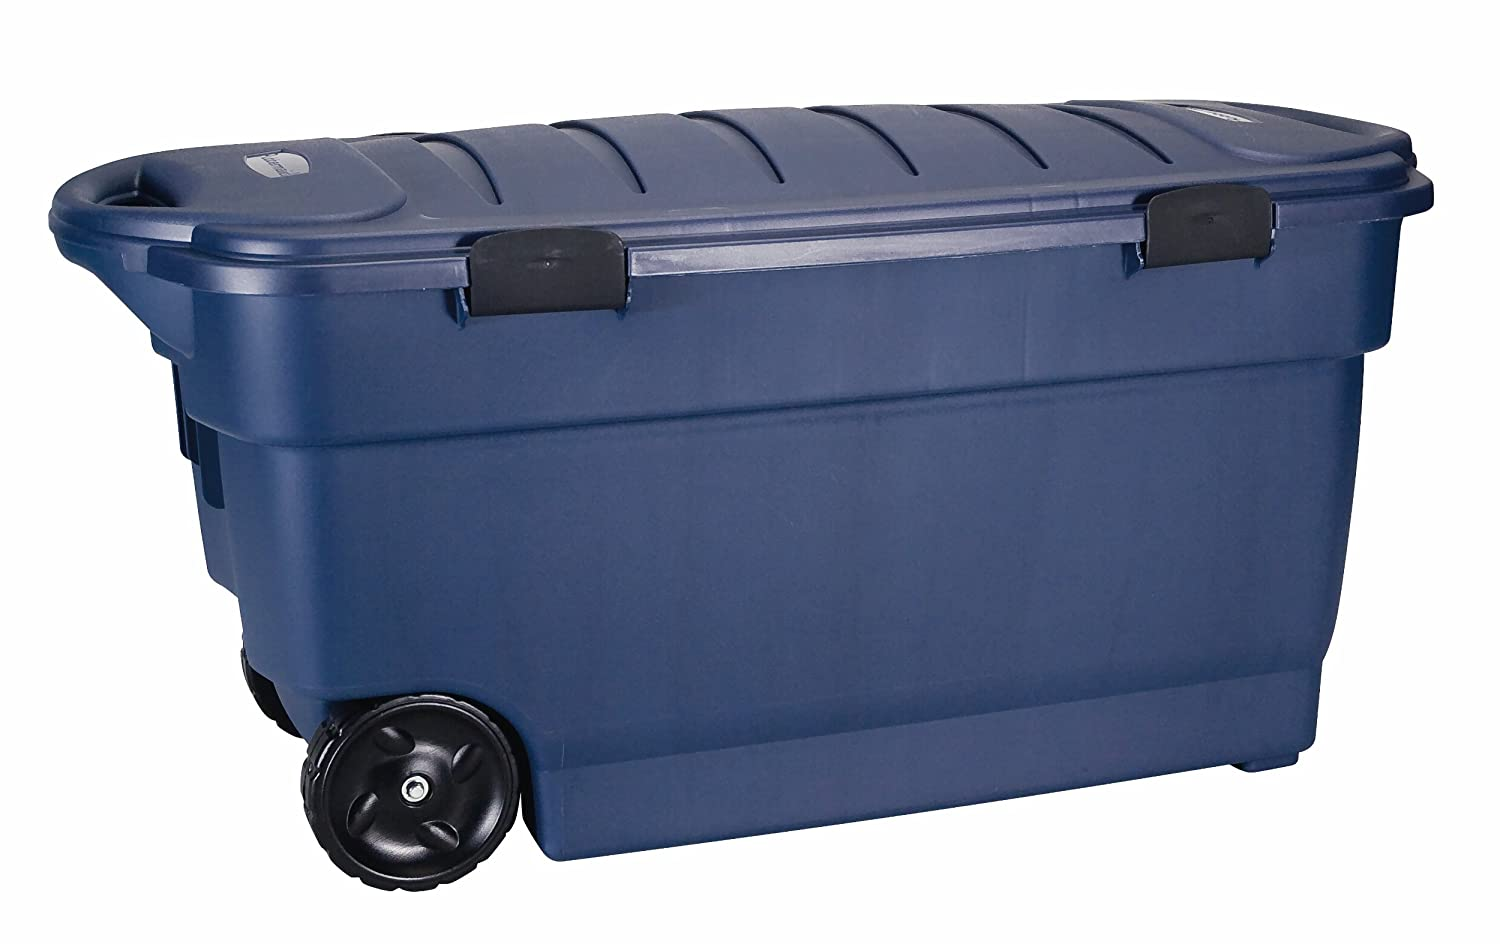 Charmant Amazon.com: Rubbermaid Roughneck ToteLocker Wheeled Storage Container, Dark  Indigo Metallic, 45 Gallon (FG246300DIM): Home U0026 Kitchen